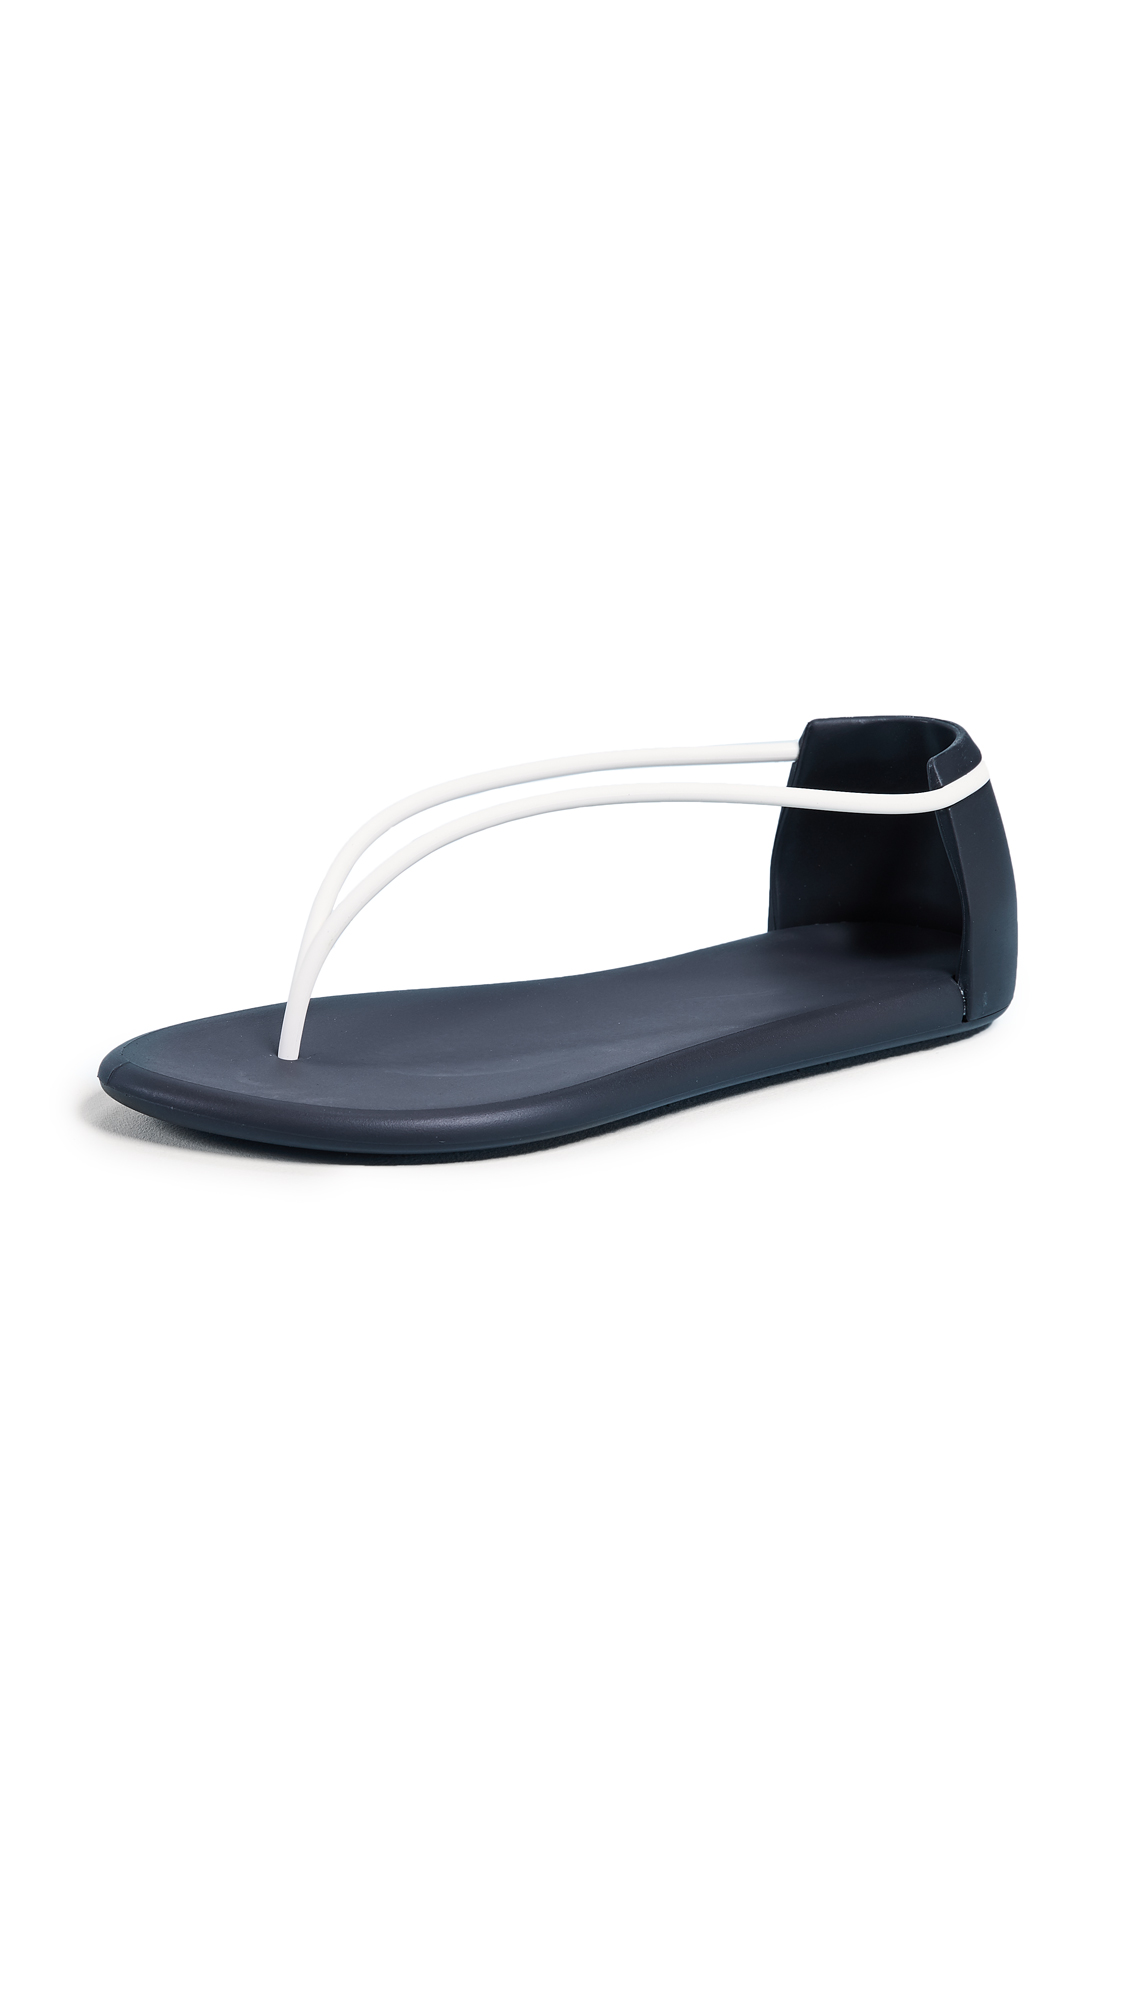 Ipanema Philippe Starck Thing N II Sandals